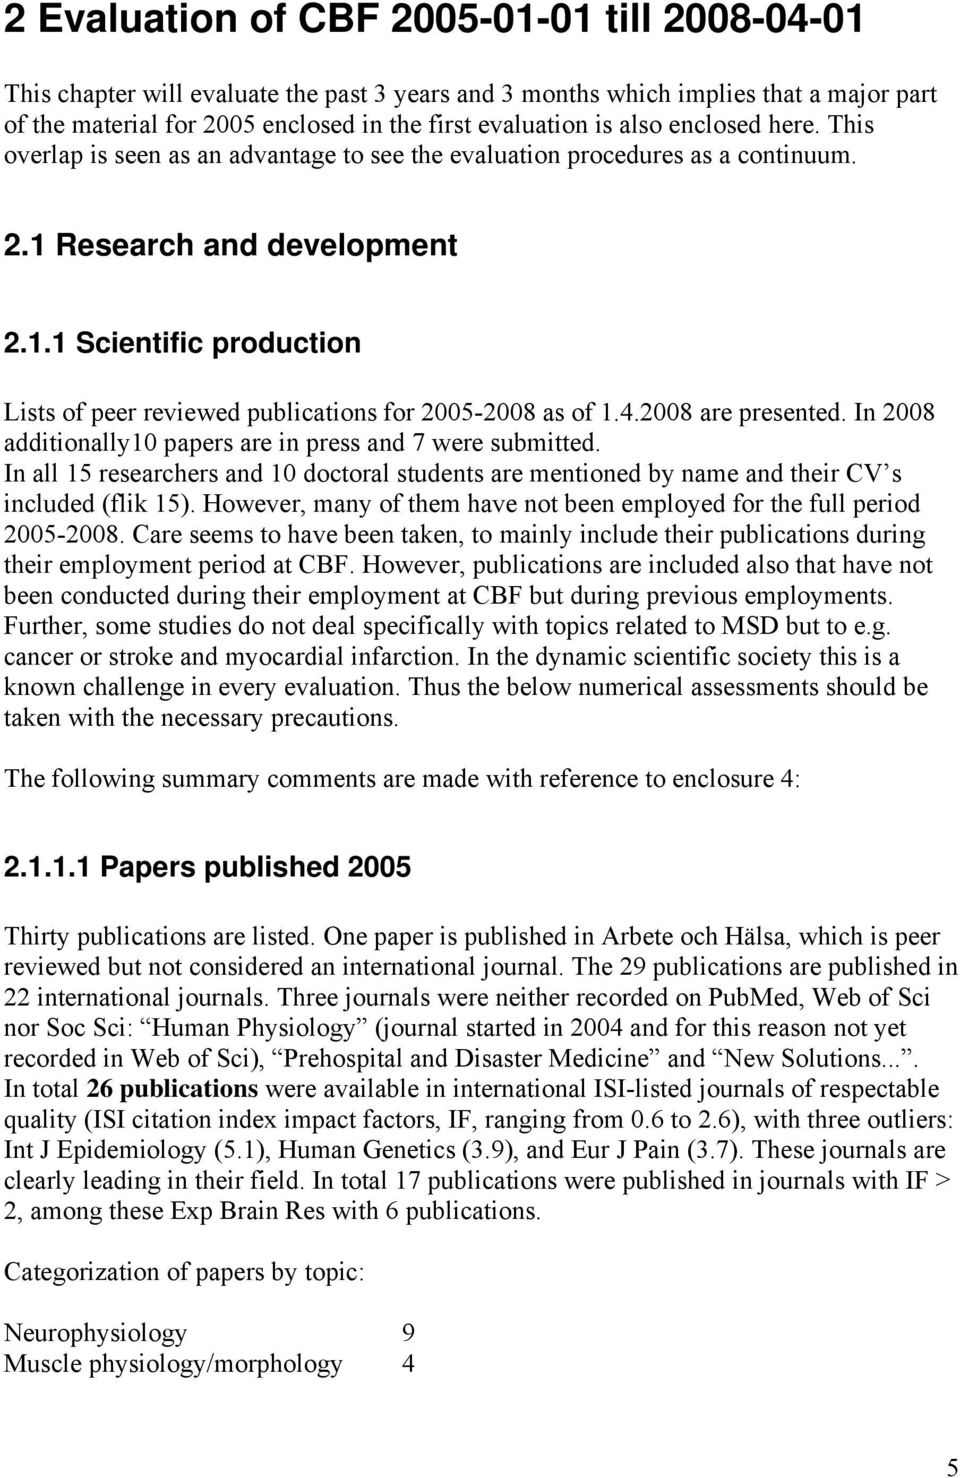 4.2008 are presented. In 2008 additionally10 papers are in press and 7 were submitted. In all 15 researchers and 10 doctoral students are mentioned by name and their CV s included (flik 15).